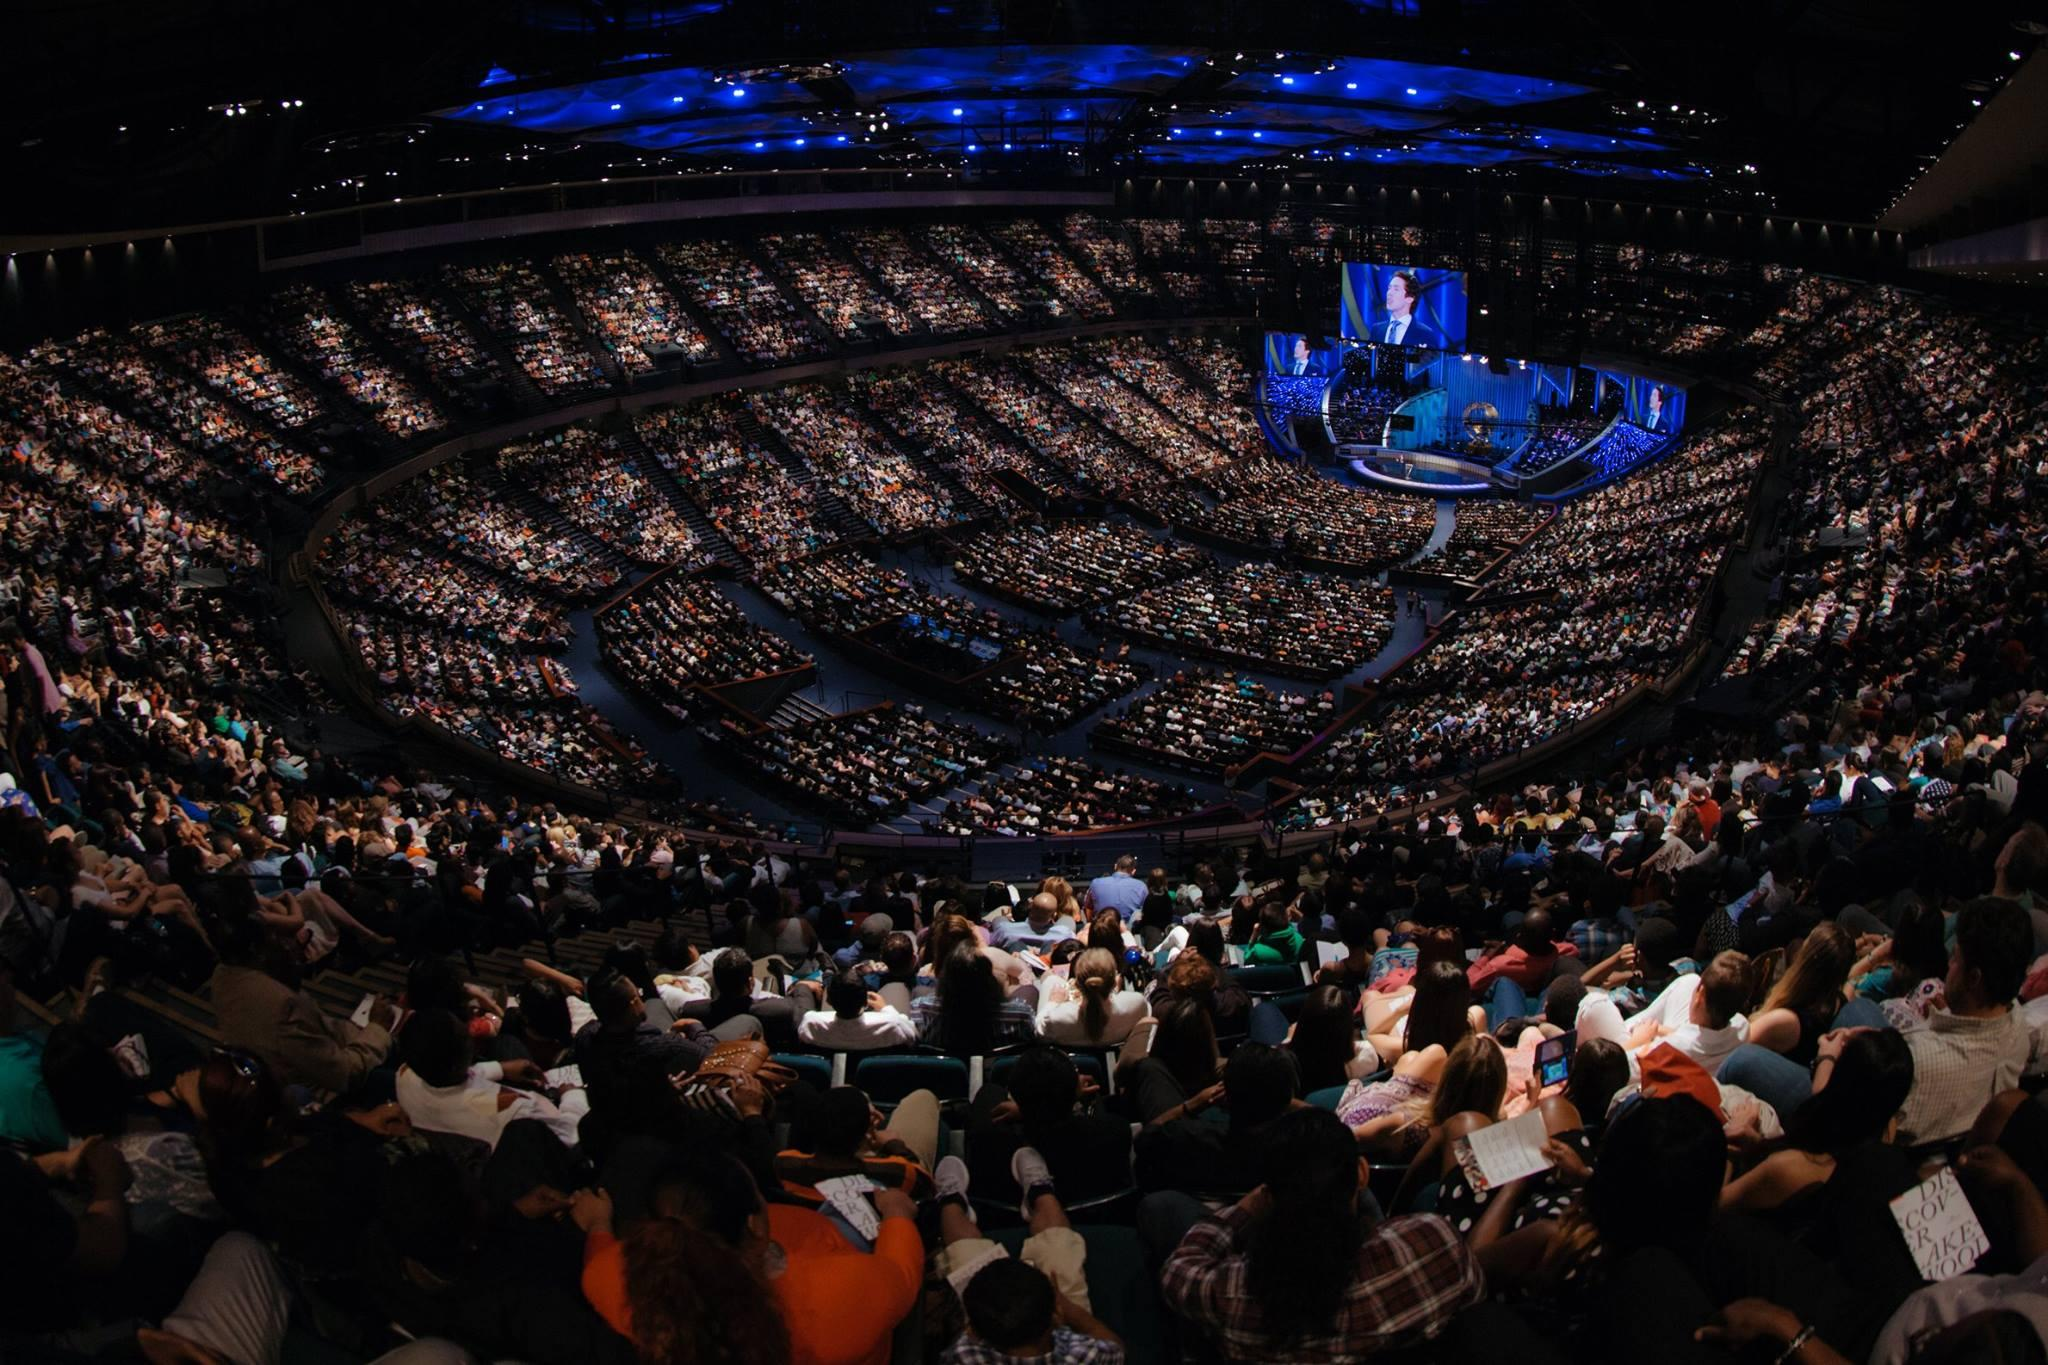 After criticism, Televangelist Joel Osteen insists his Houston megachurch  can offer shelter